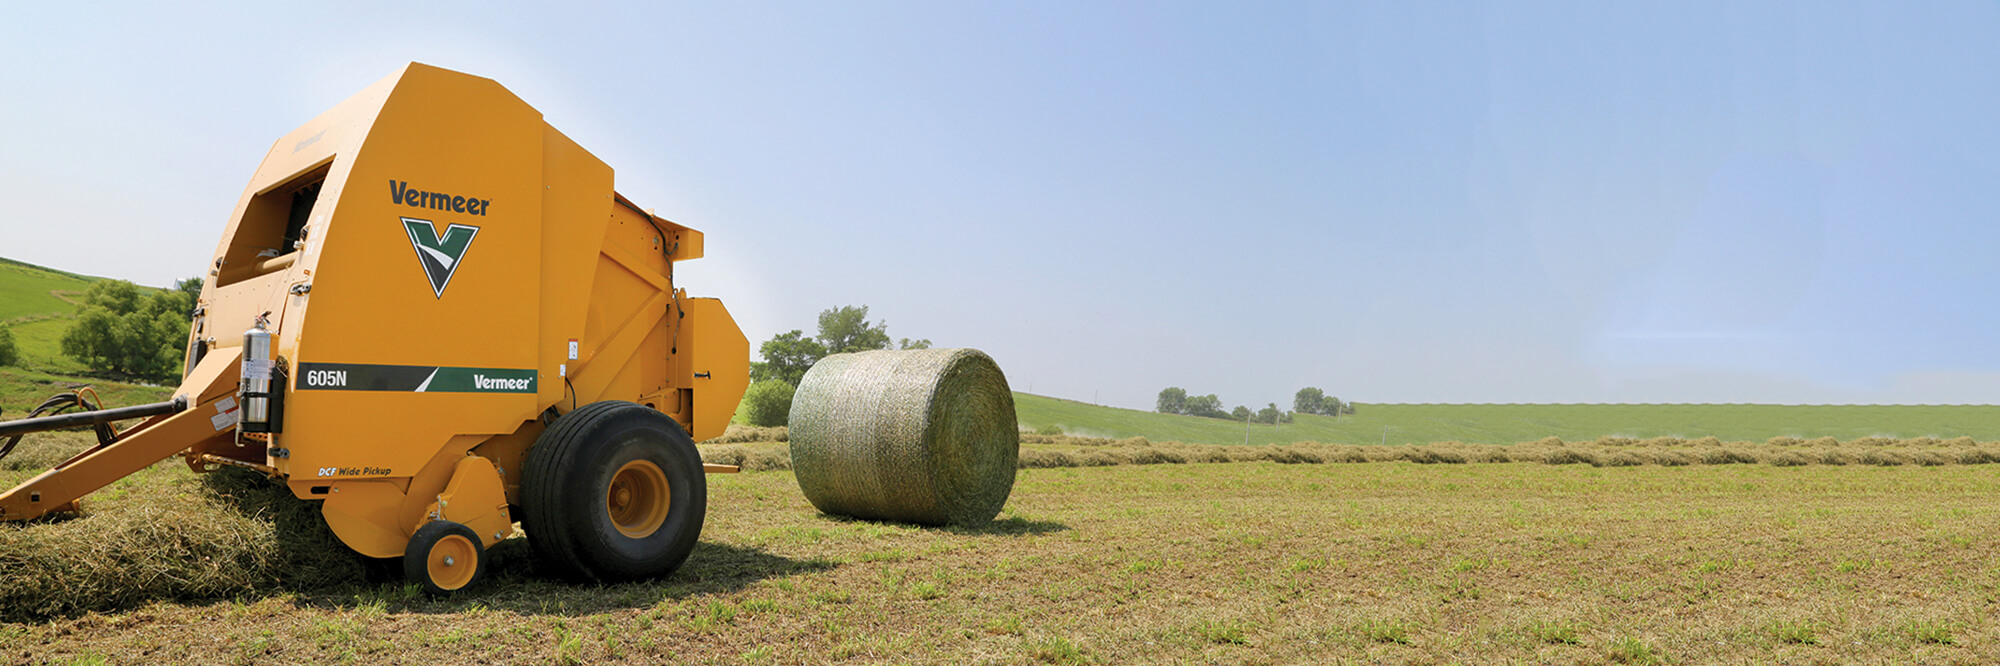 Home | Beck's Farm Equipment | Serving The Farmers in Oklahoma since